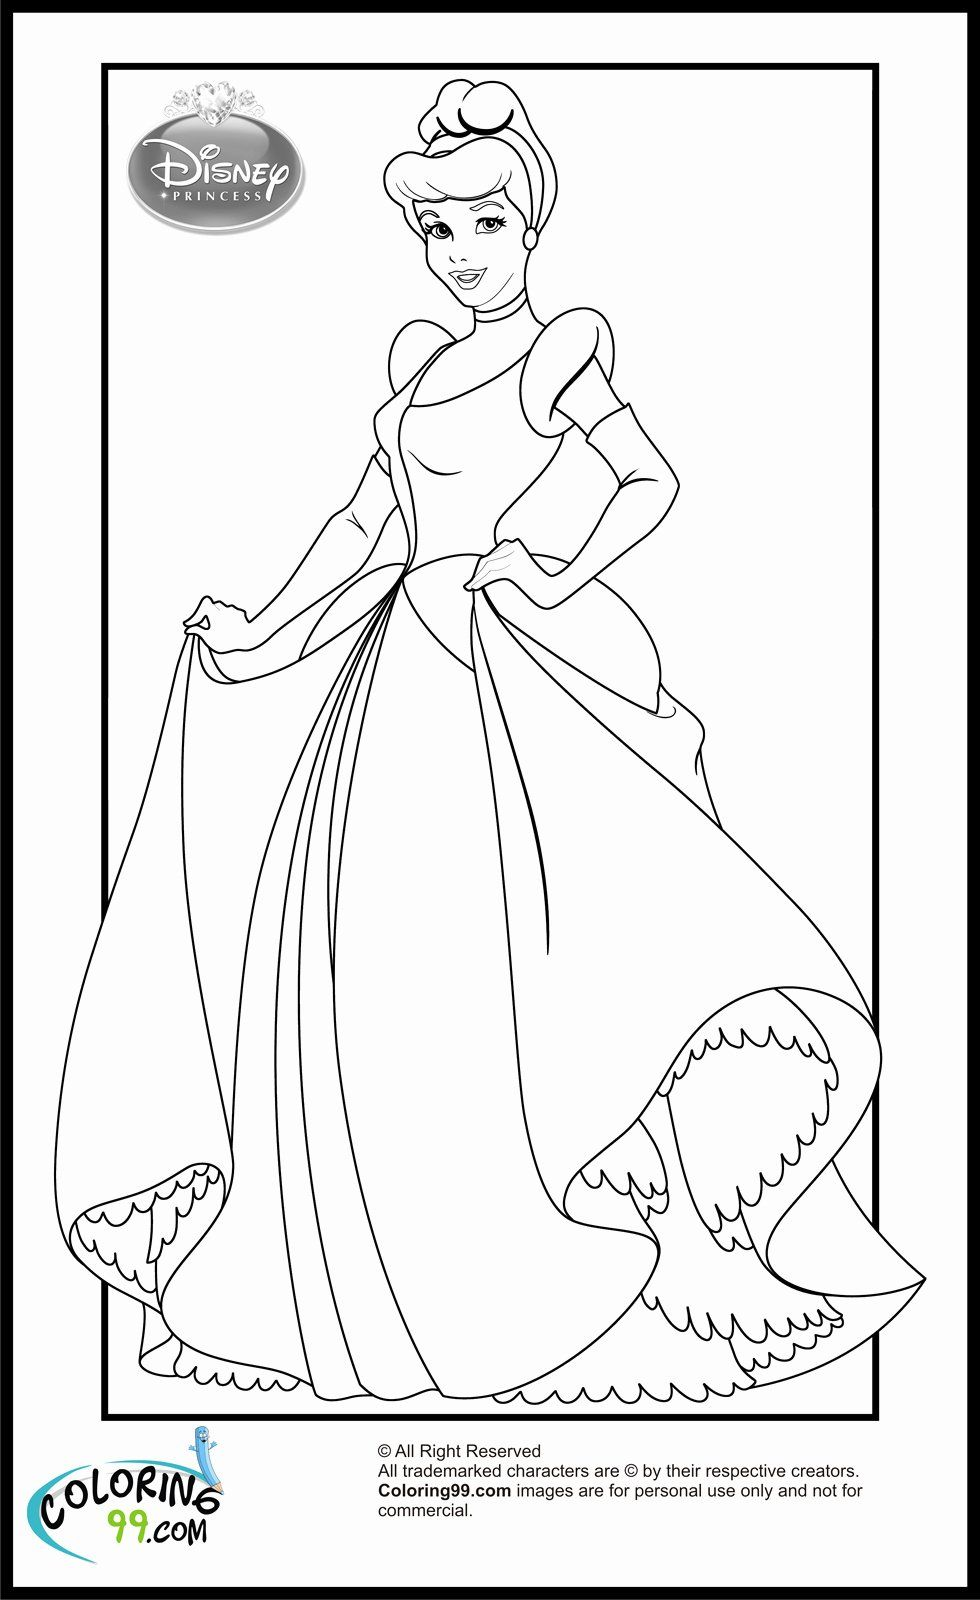 Coloring Pages Of Disney Princesses Awesome Disney Princess Cinderella Colorin In 2020 Cinderella Coloring Pages Disney Princess Coloring Pages Princess Coloring Pages